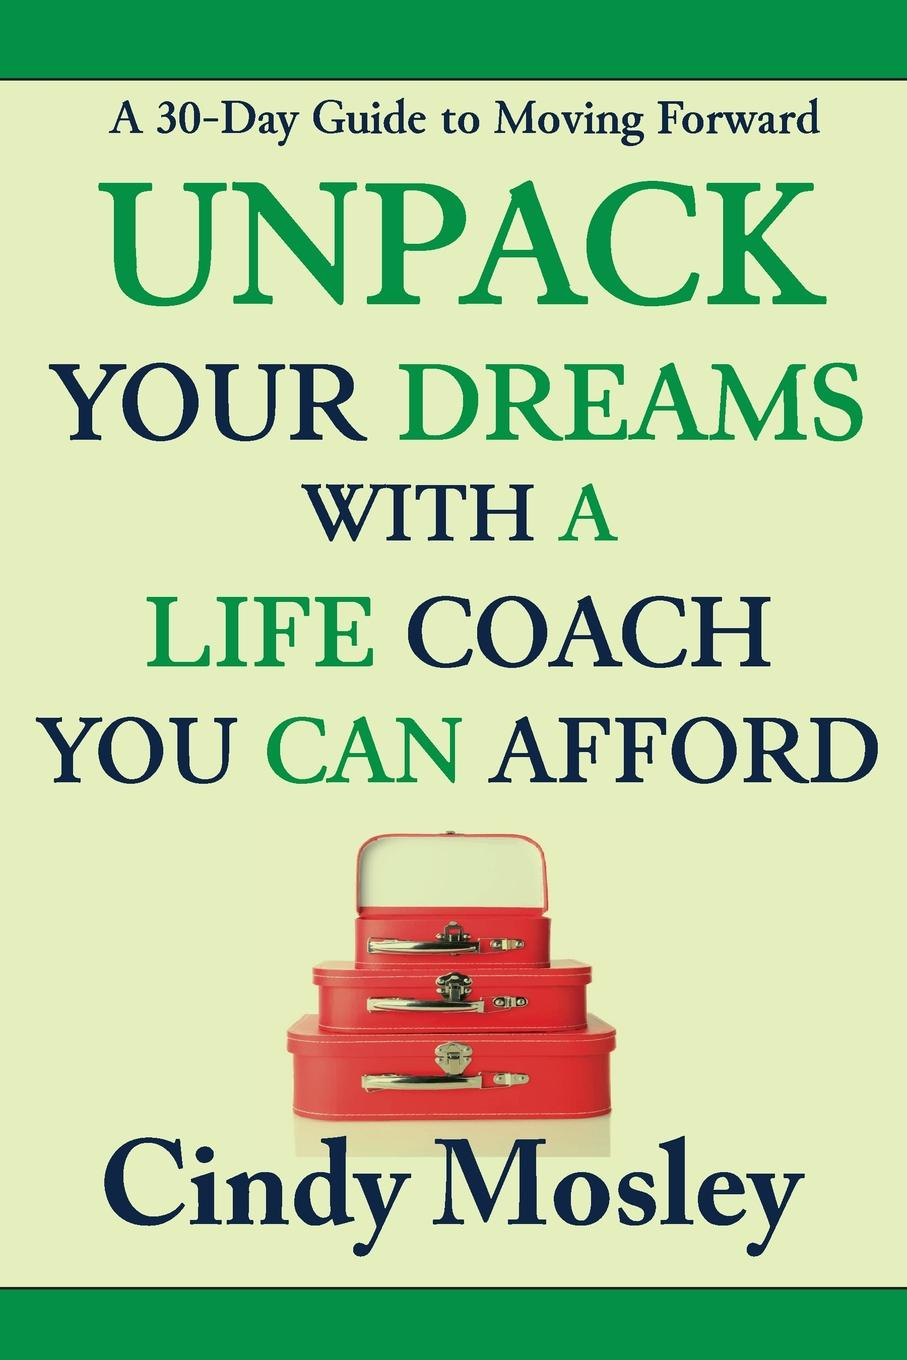 цены на Cindy Mosley Unpack Your Dreams With a Life Coach You Can Afford. A 30-Day Guide to Moving Forward  в интернет-магазинах